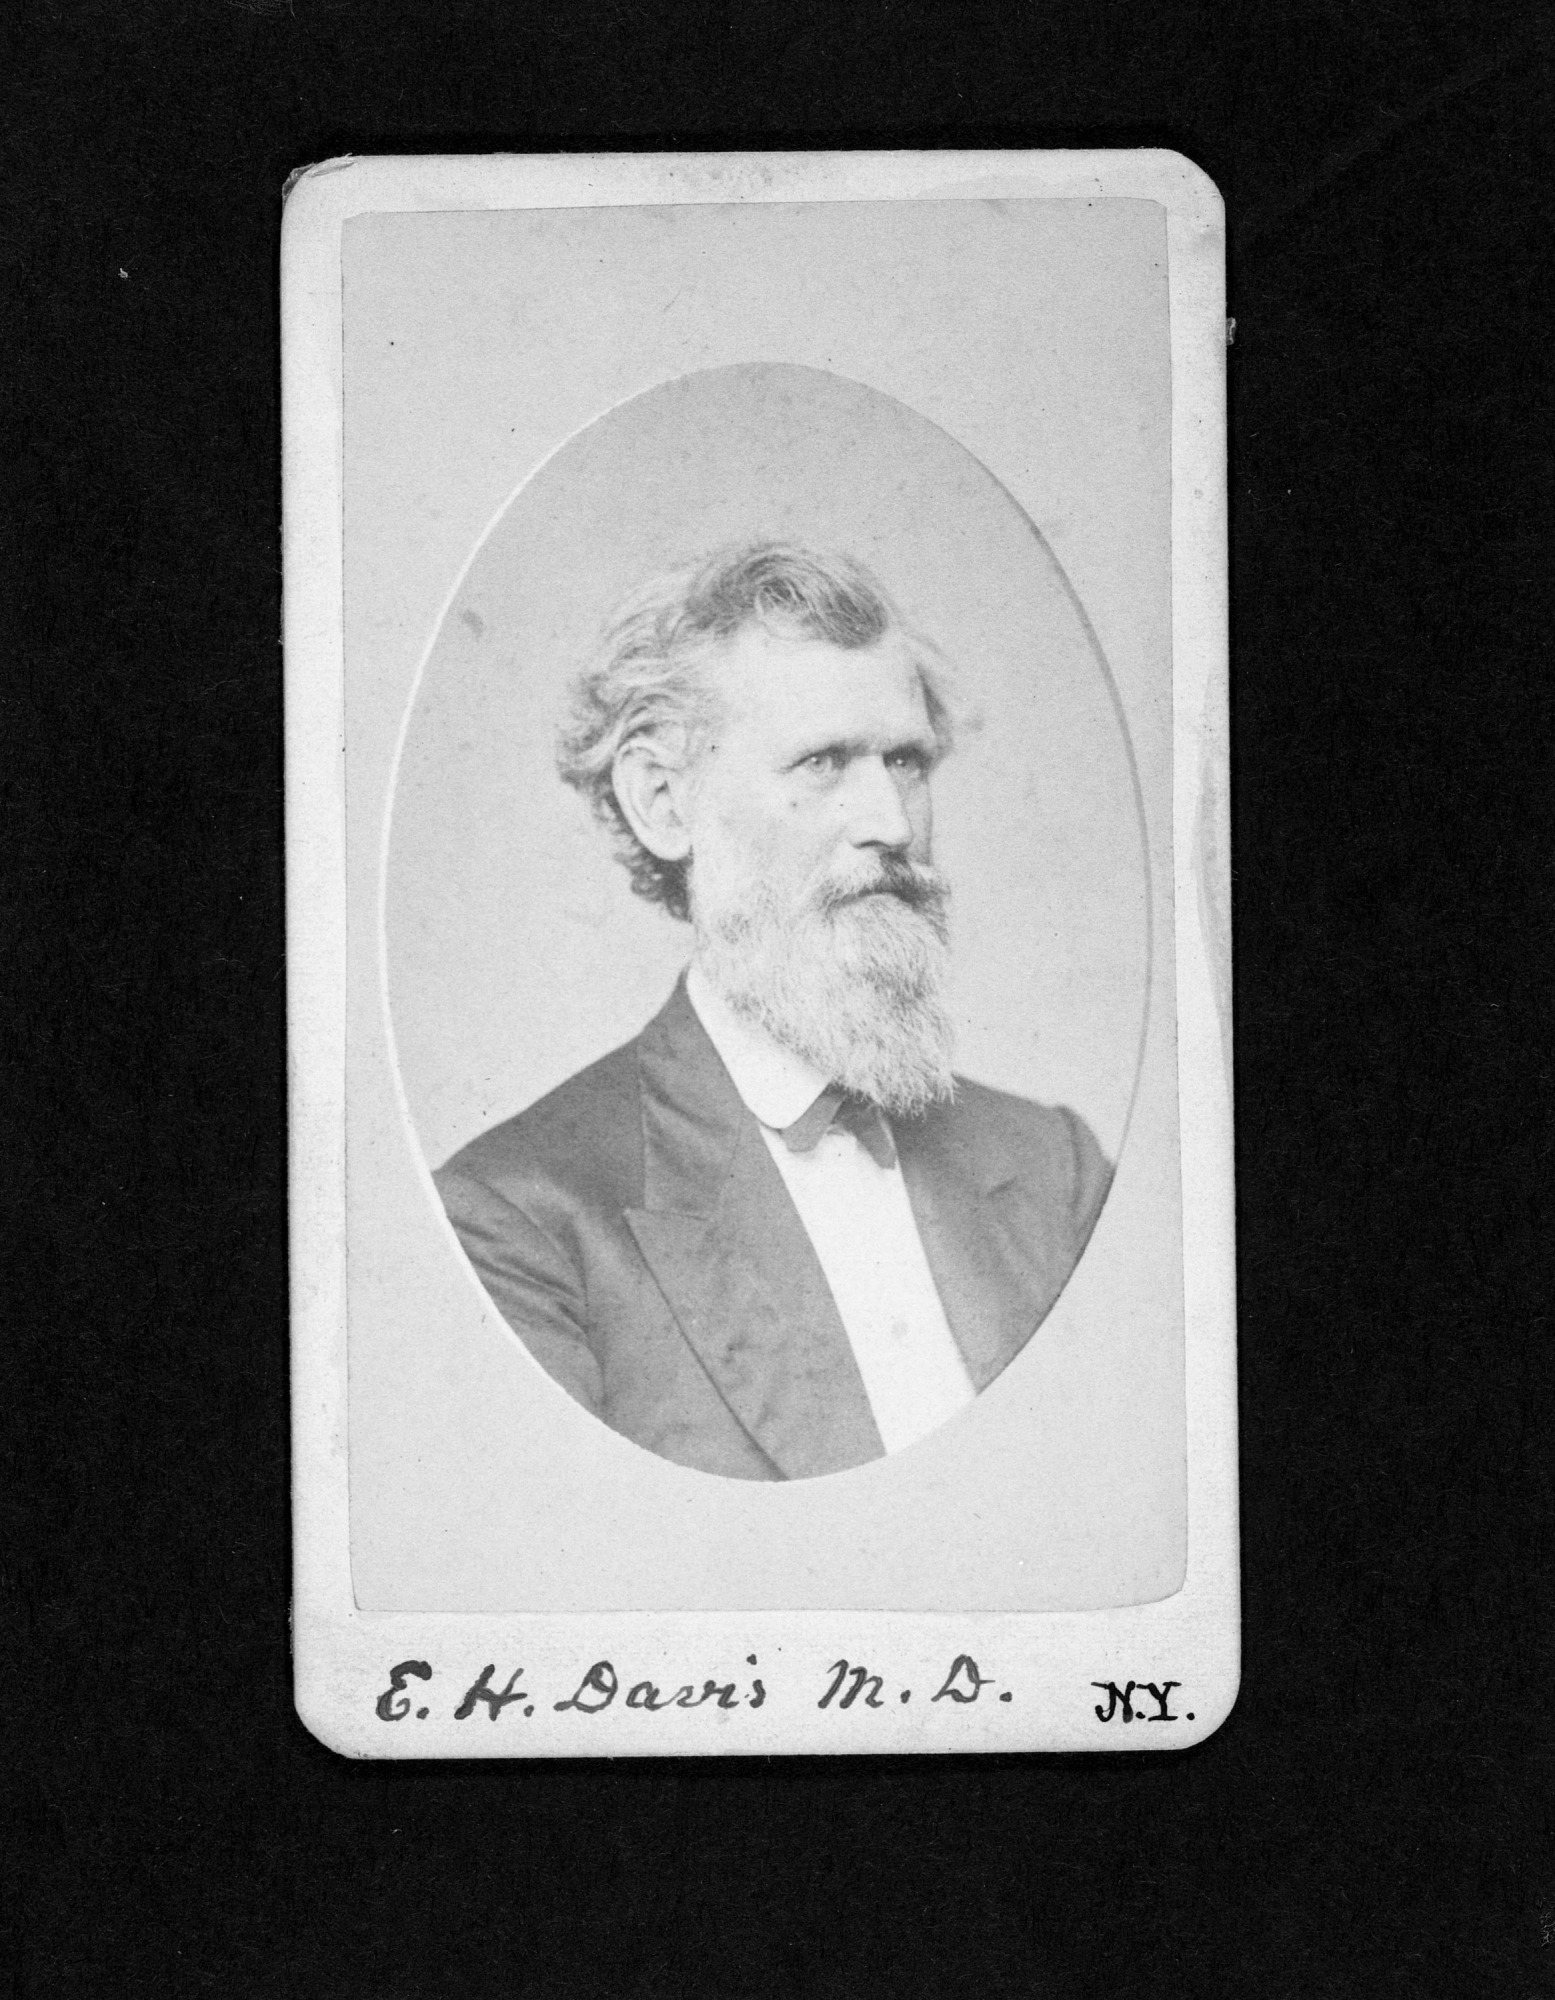 Edwin Hamilton Davis, by Joseph Henry Papers Project, c. 1860s, Smithsonian Archives - History Div, SA-458.